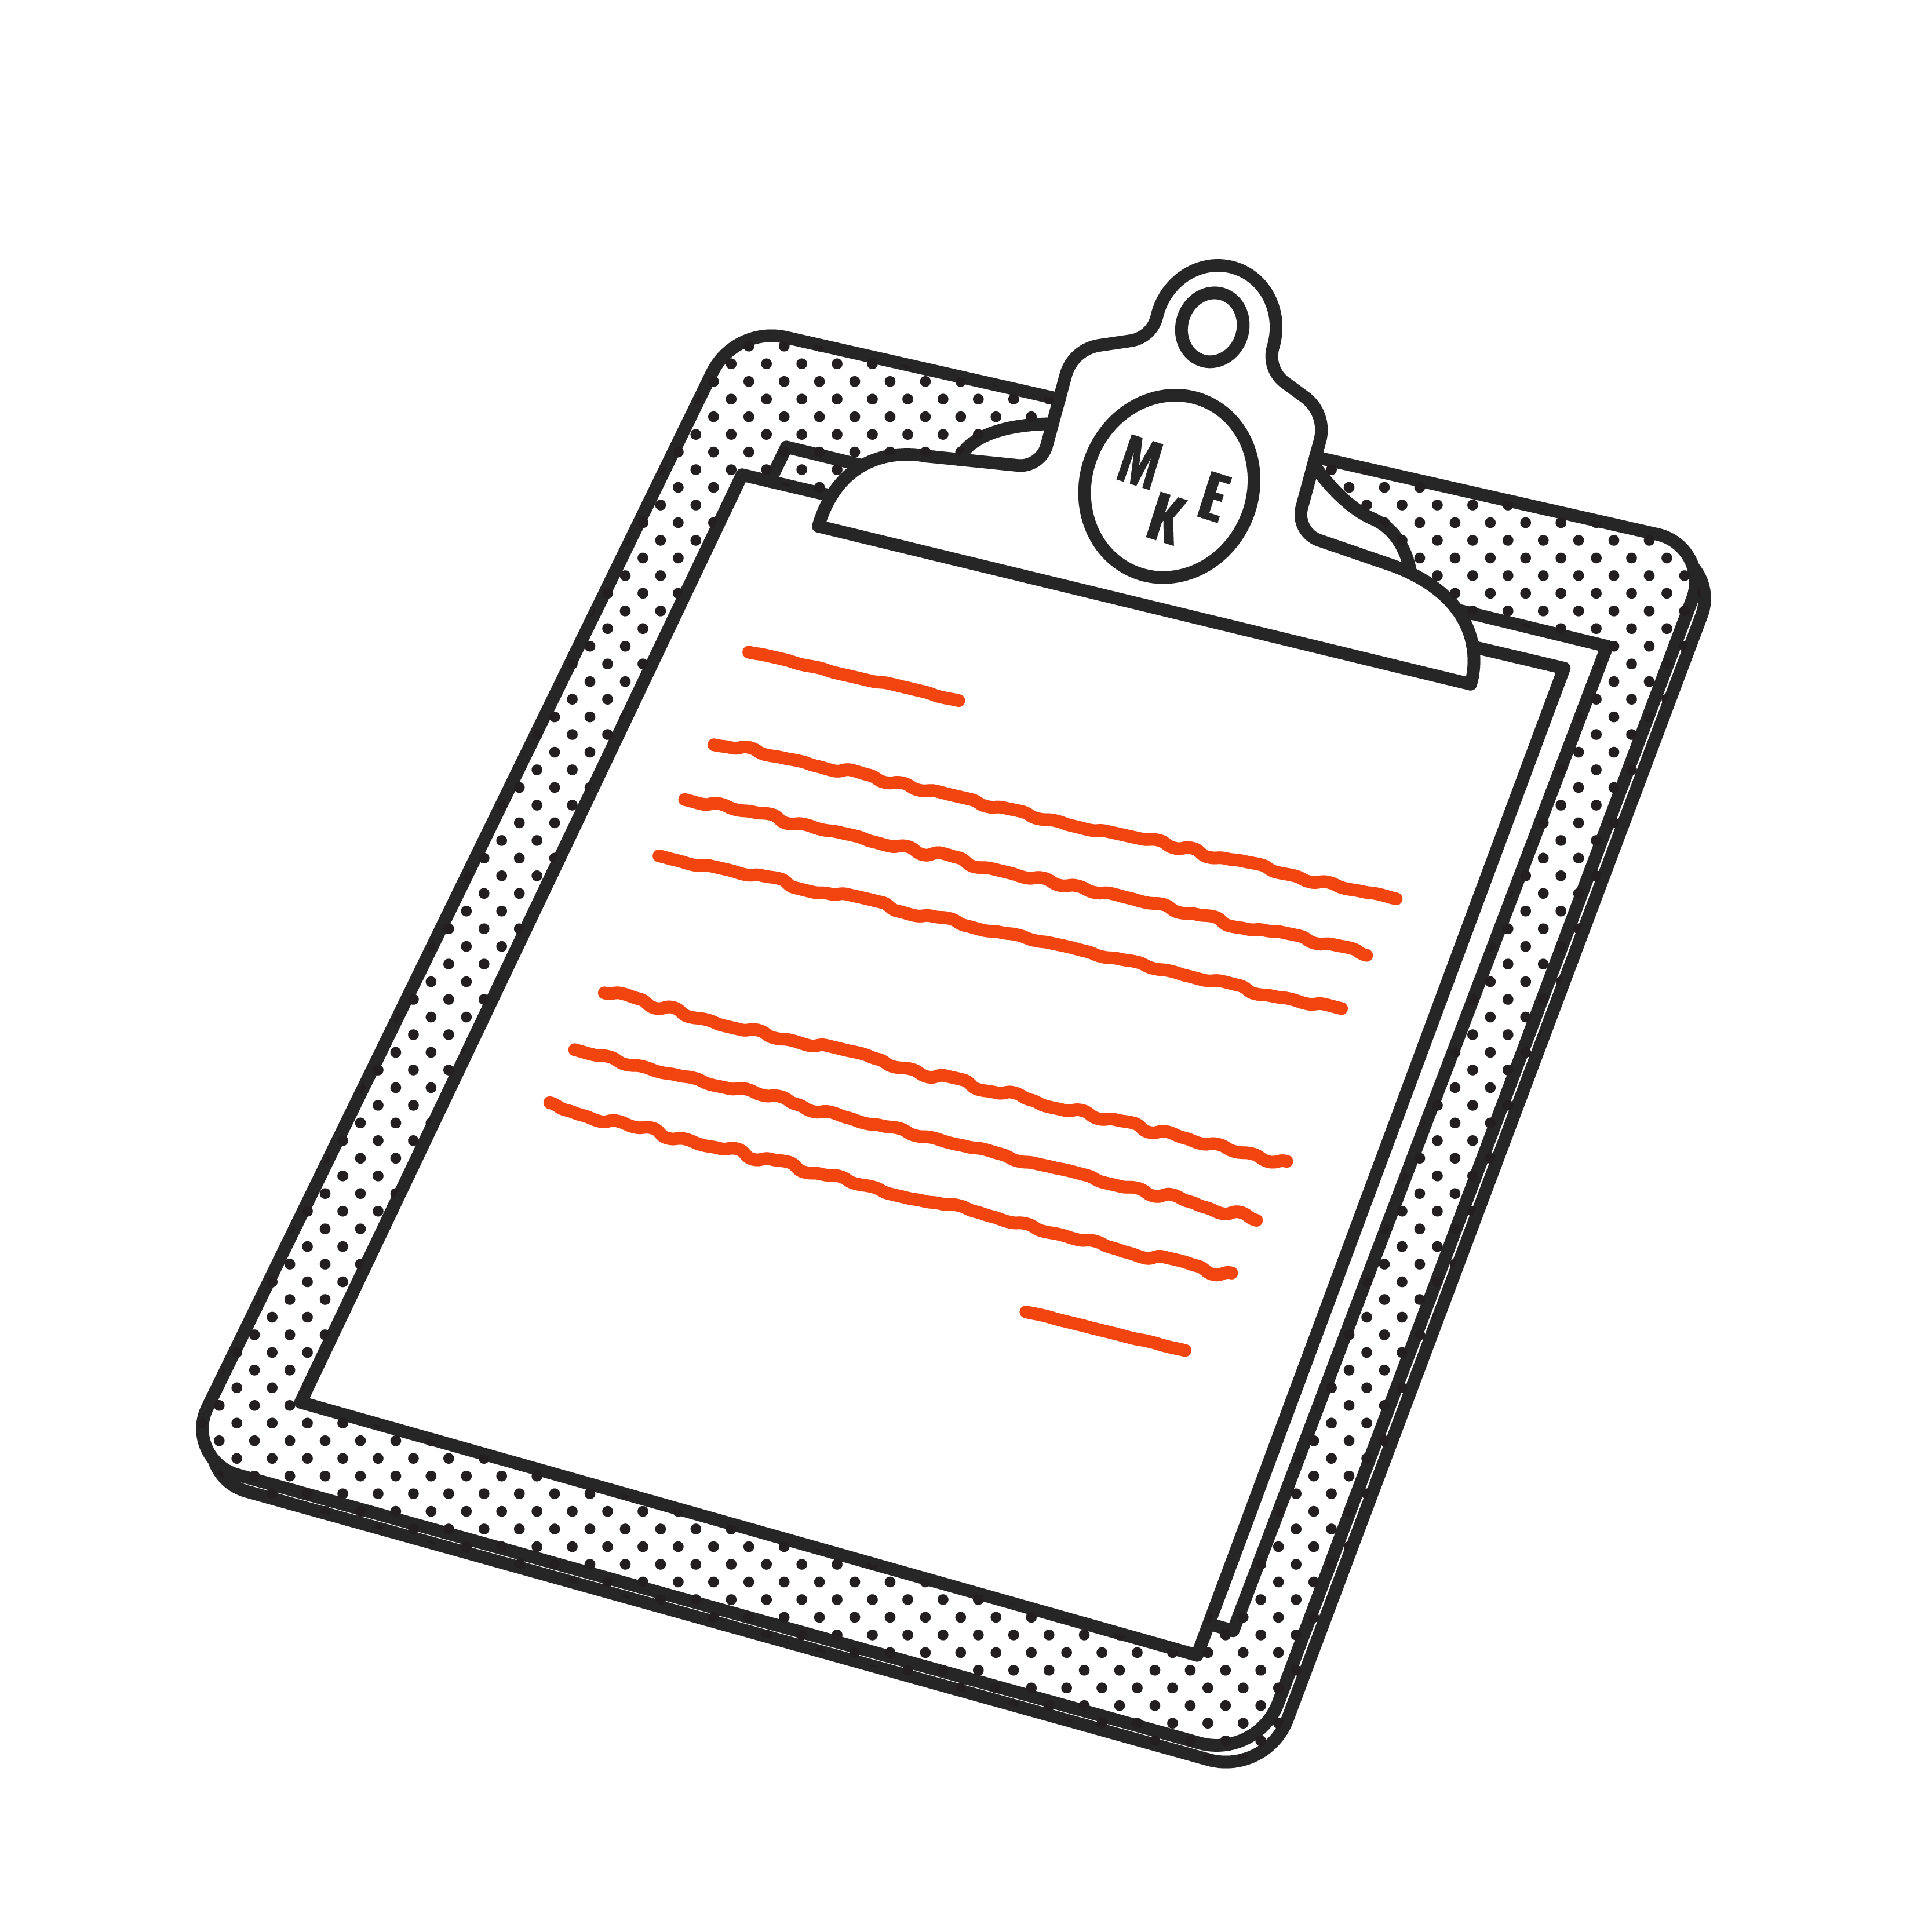 Clipboard (NO TEXT)